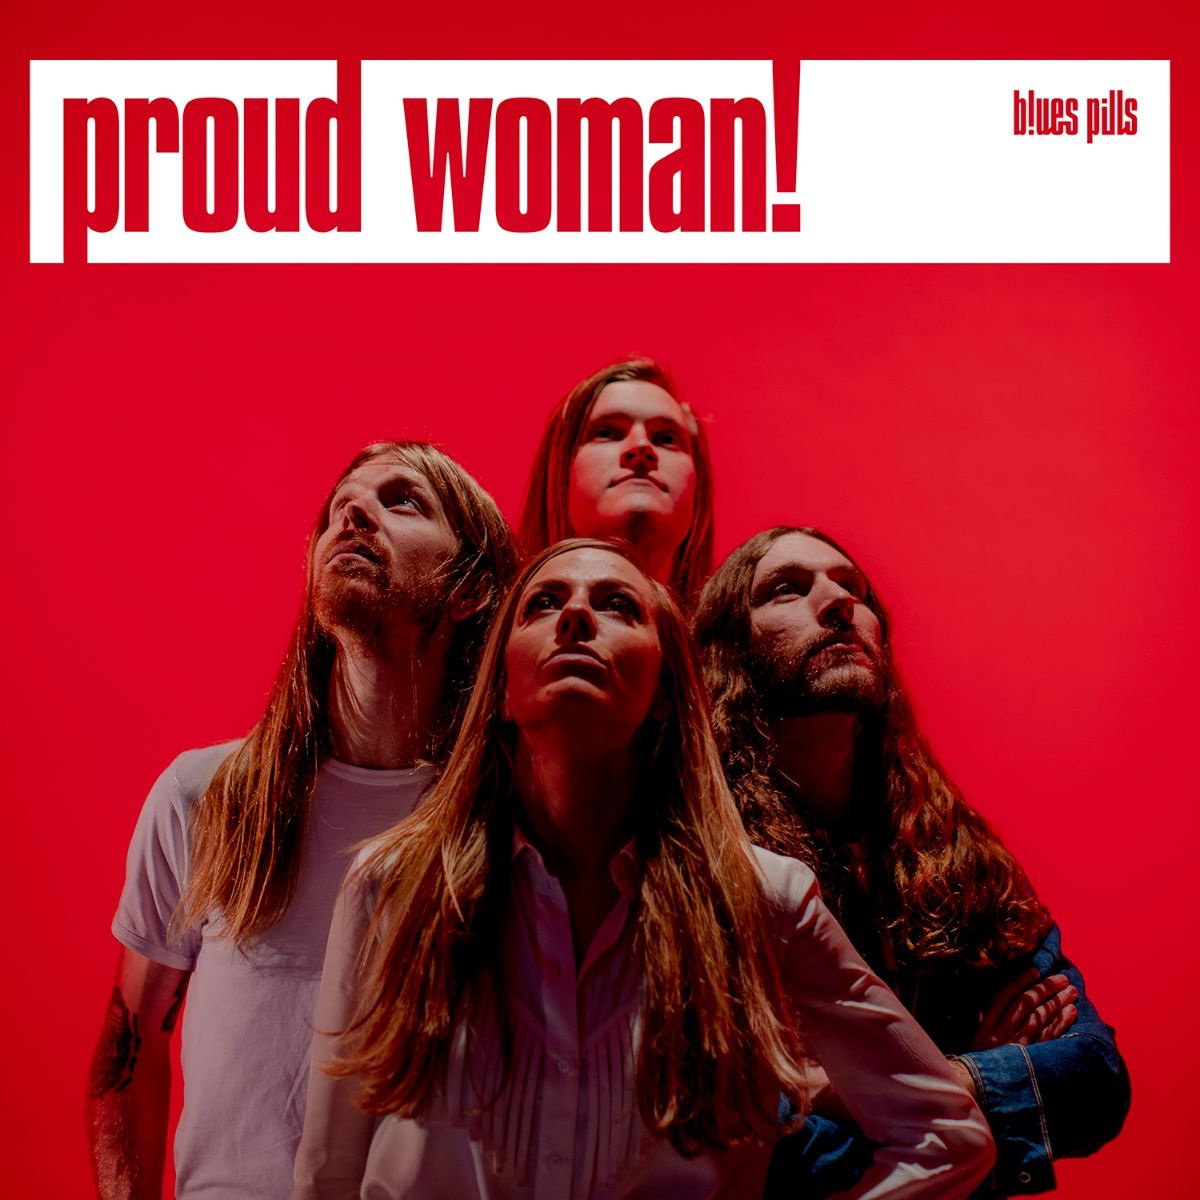 blues pills proud woman